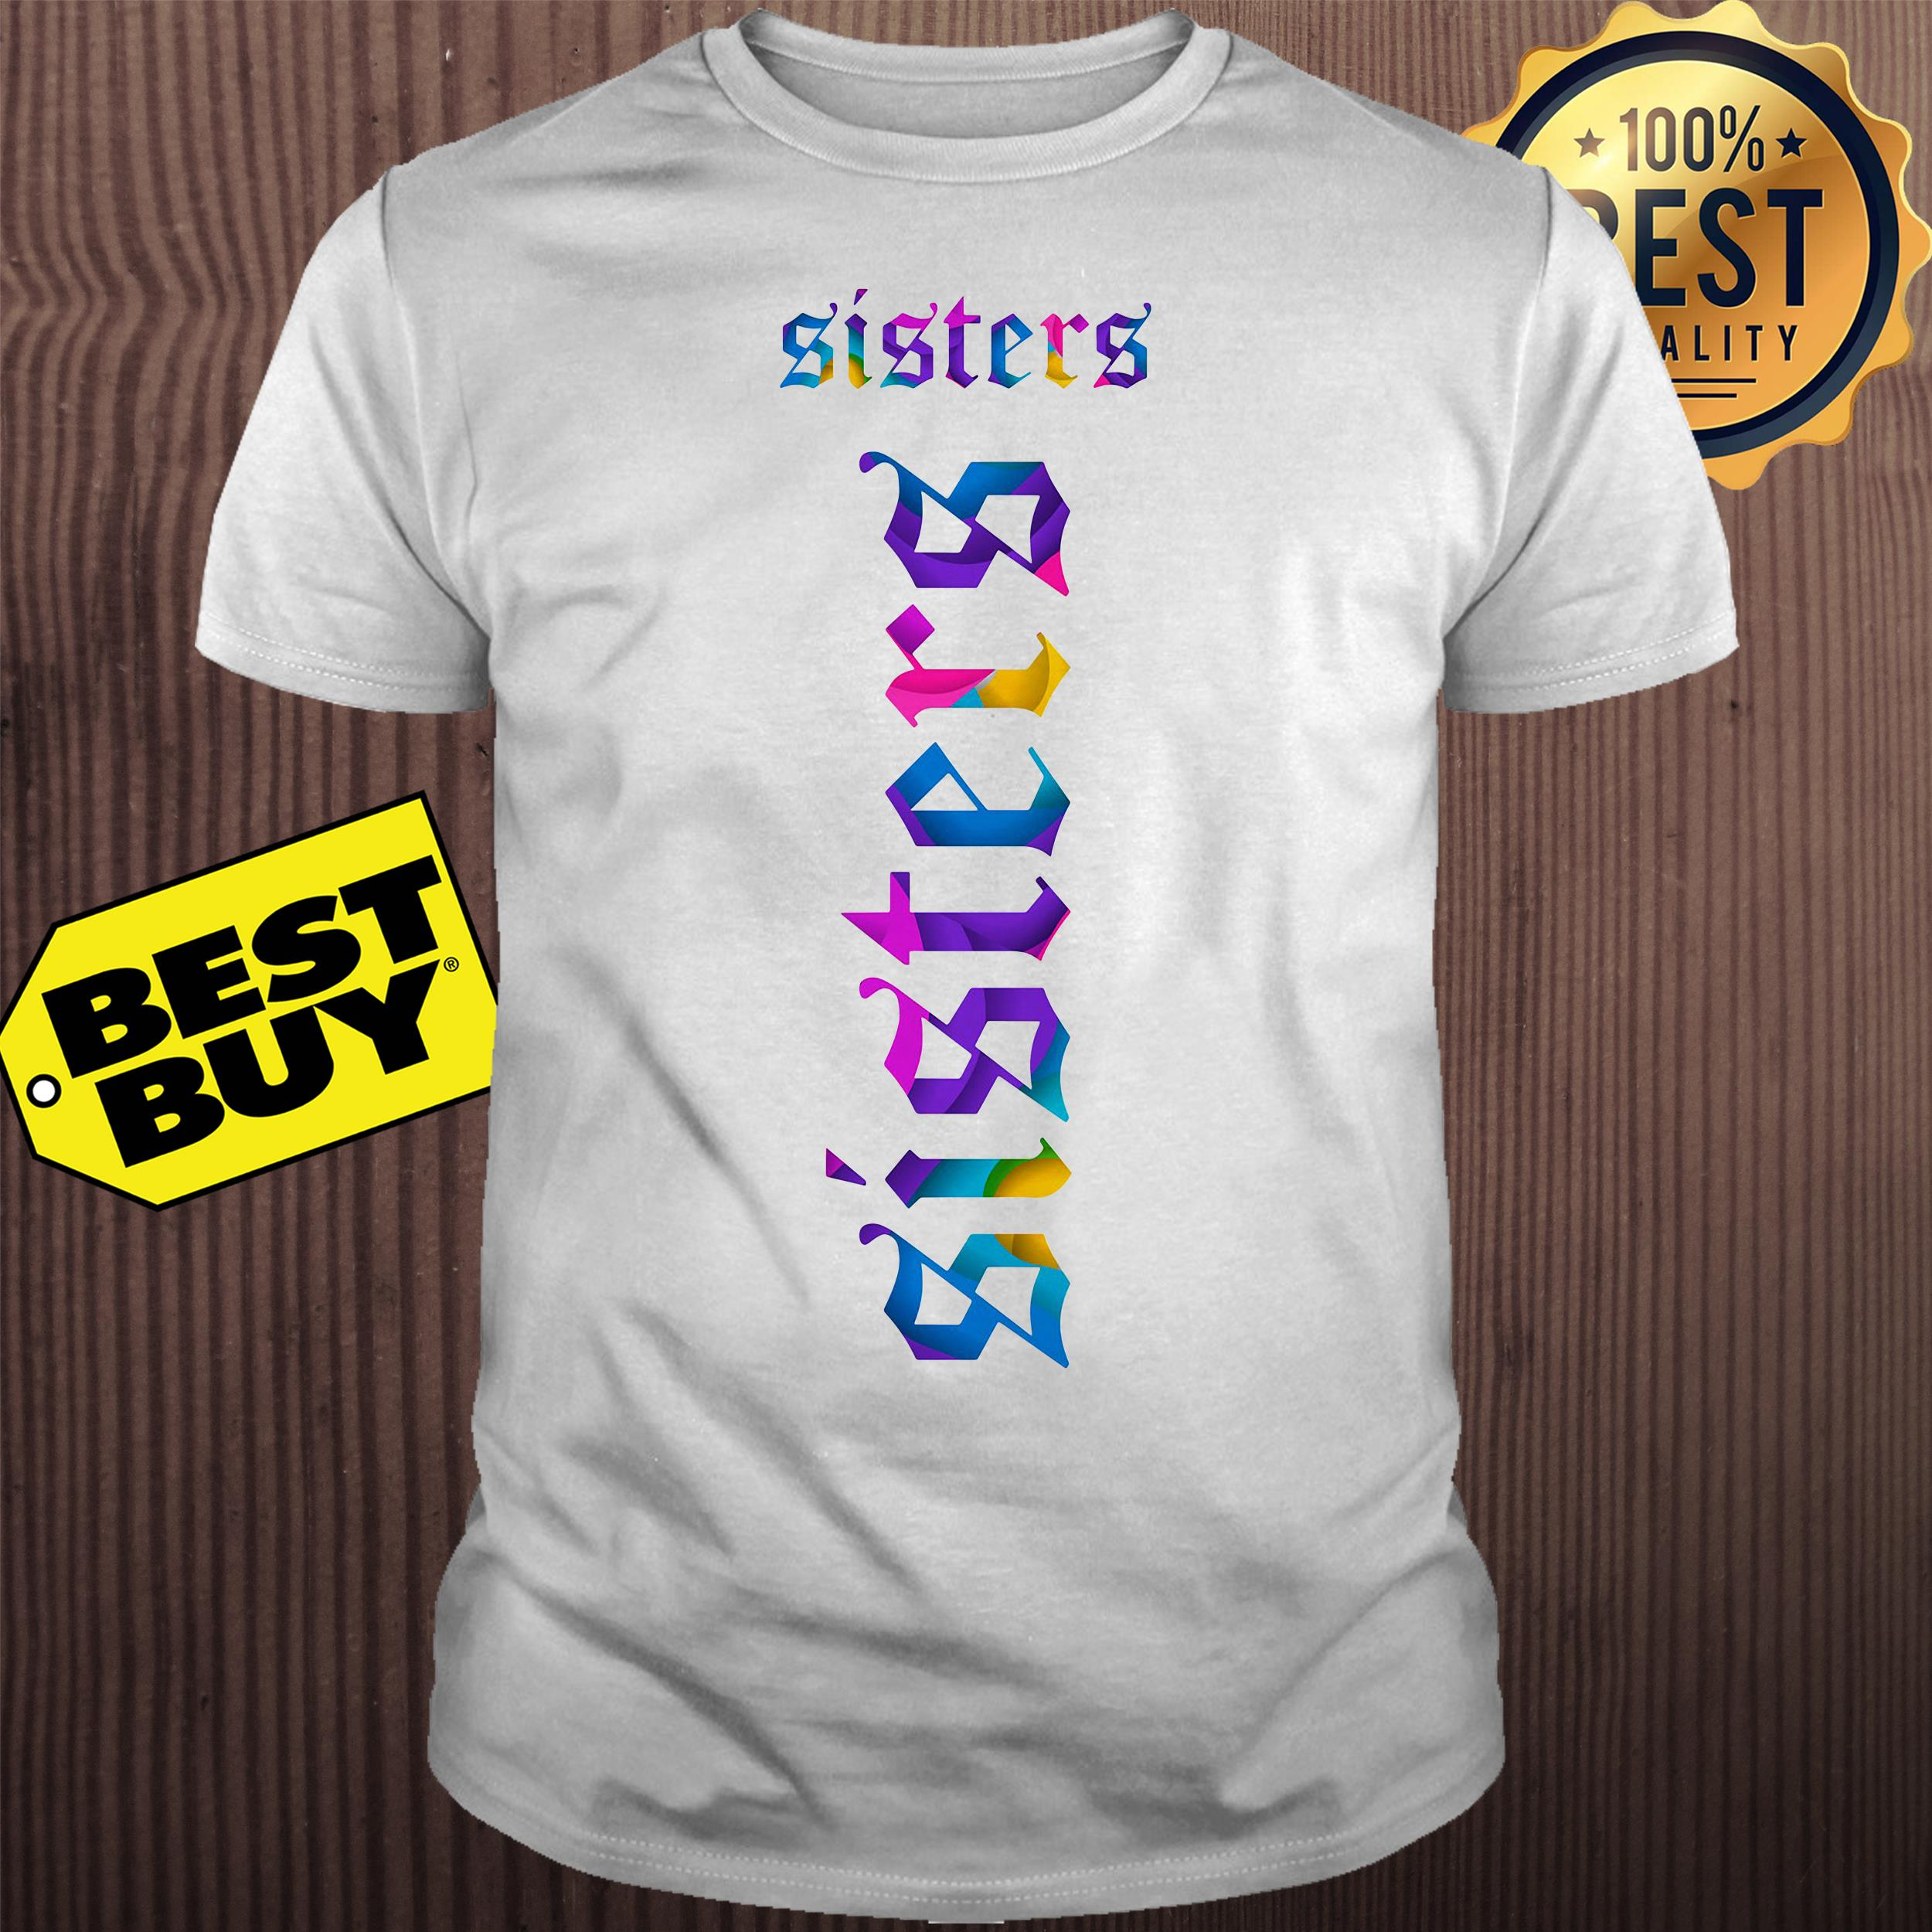 James Charles Merch Sisters shirt